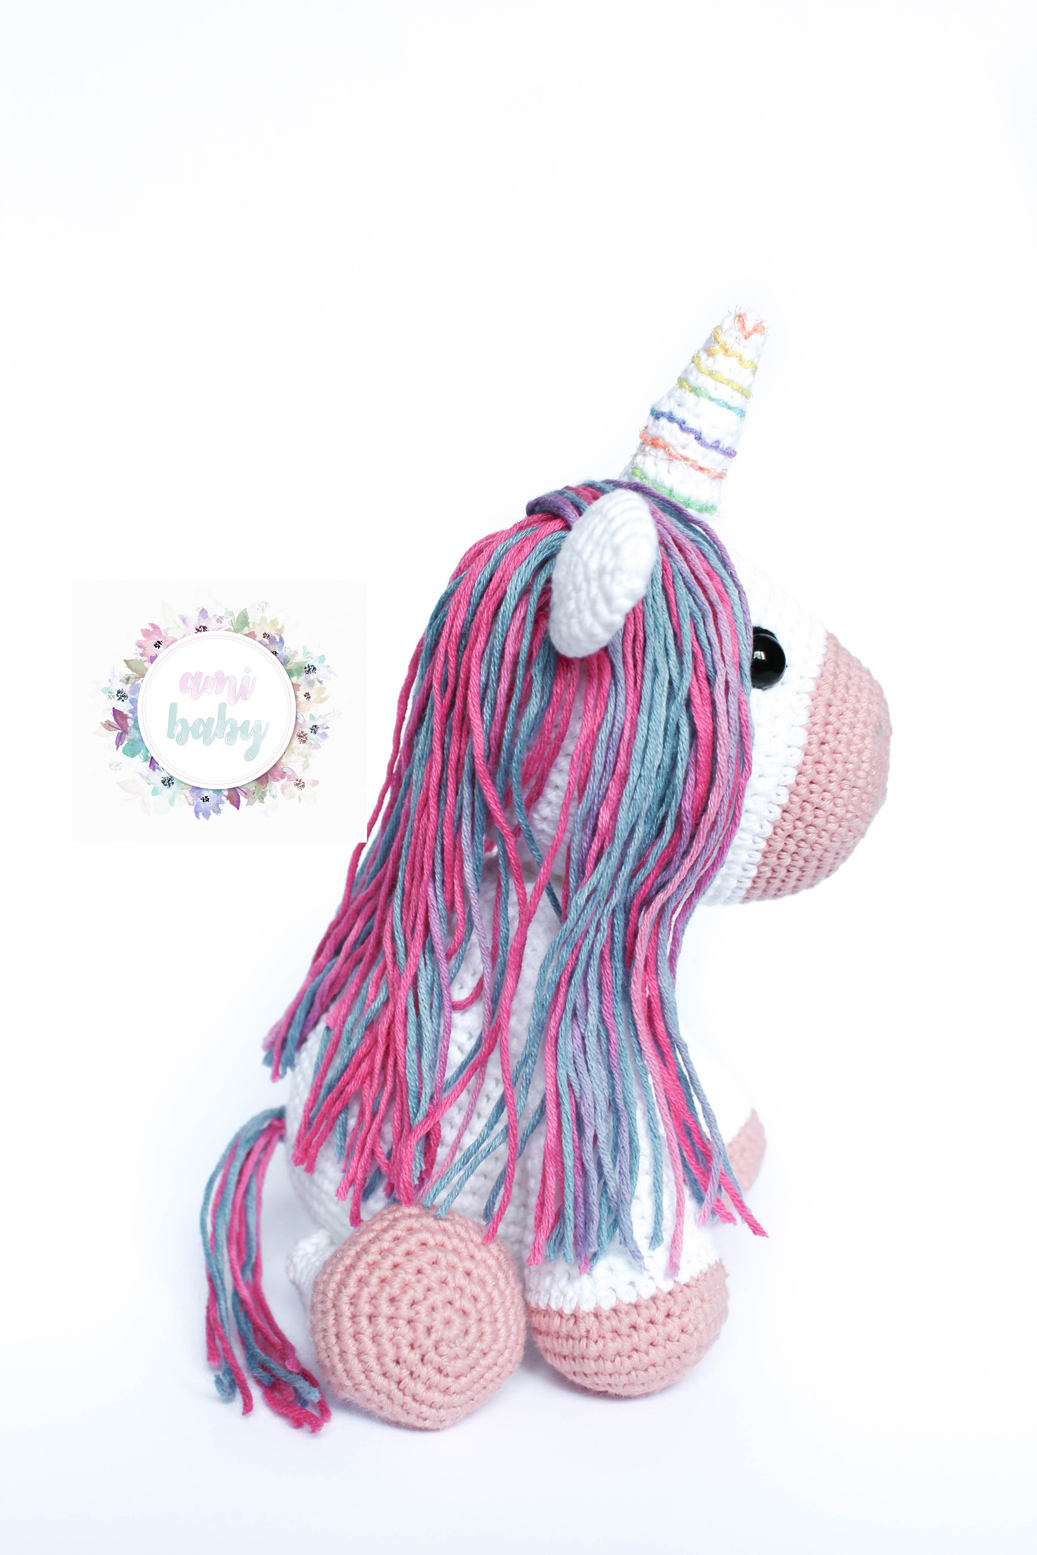 Unicorn pattern pinkfoxstitches, patrón unicornio pinkfoxstitches ...